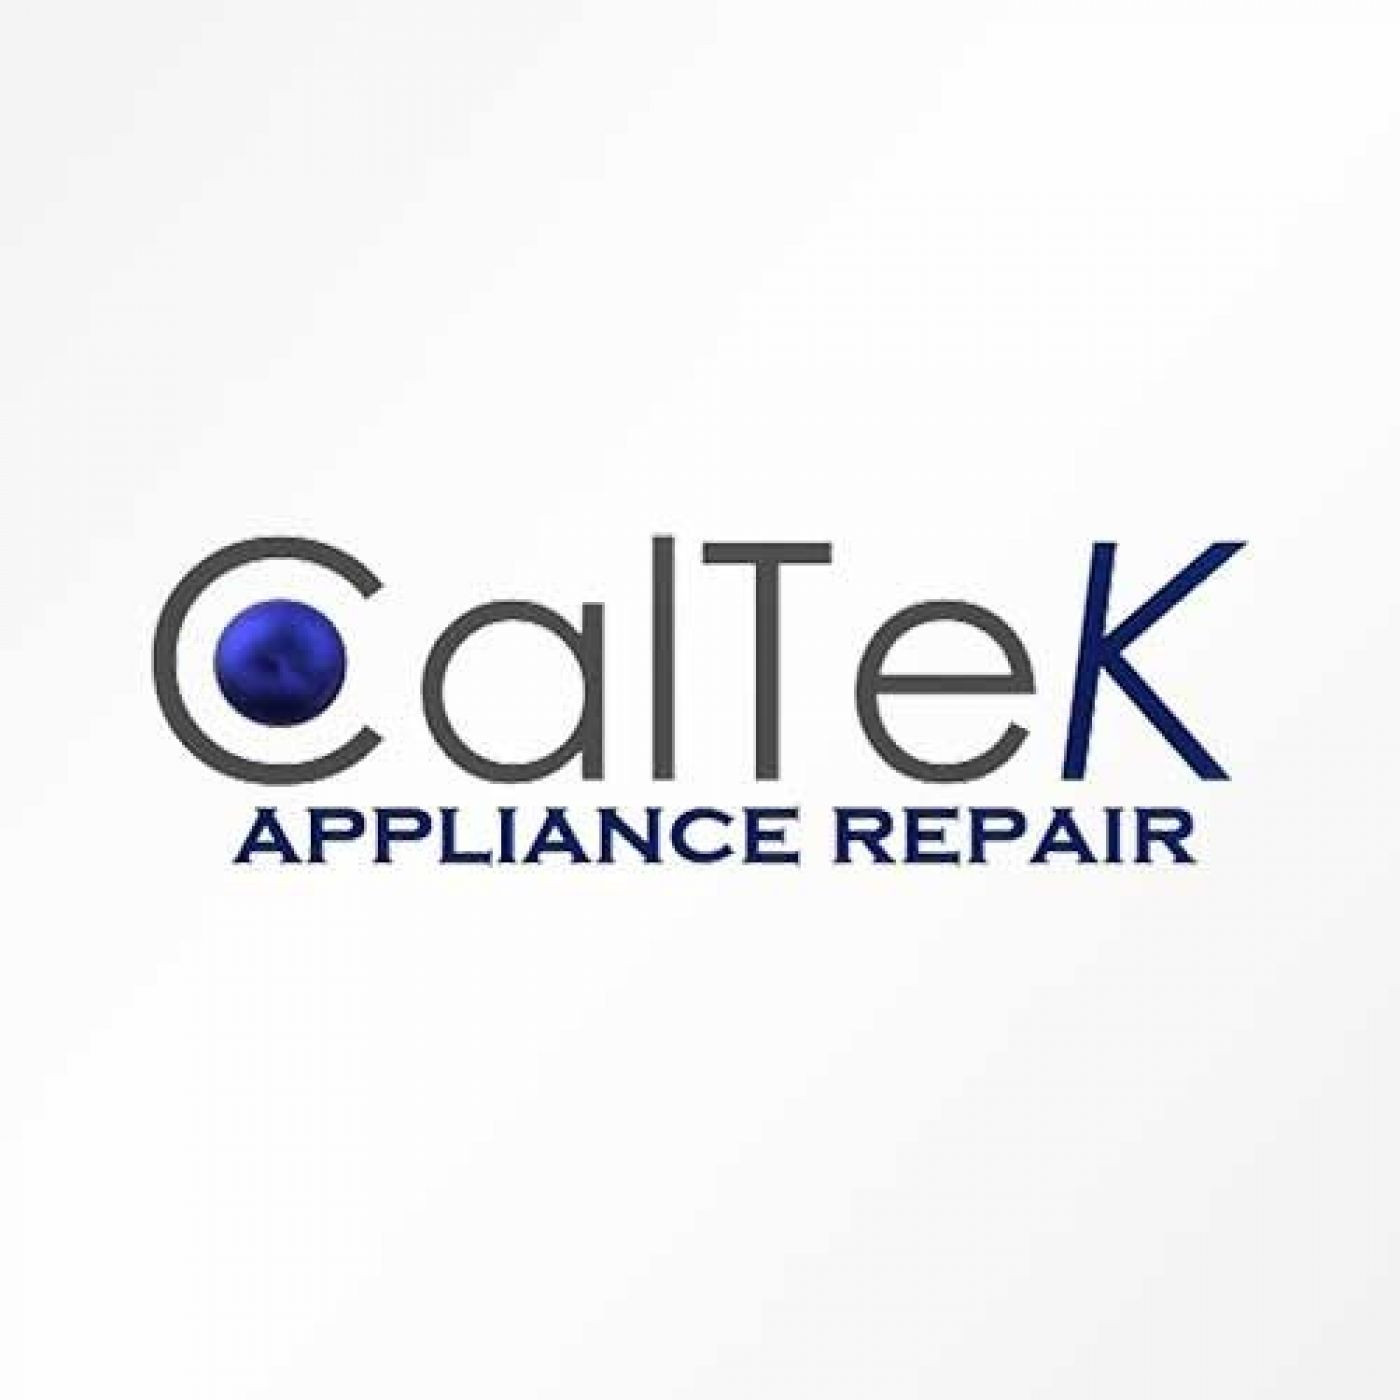 Welcome: CalTek Appliance Repair